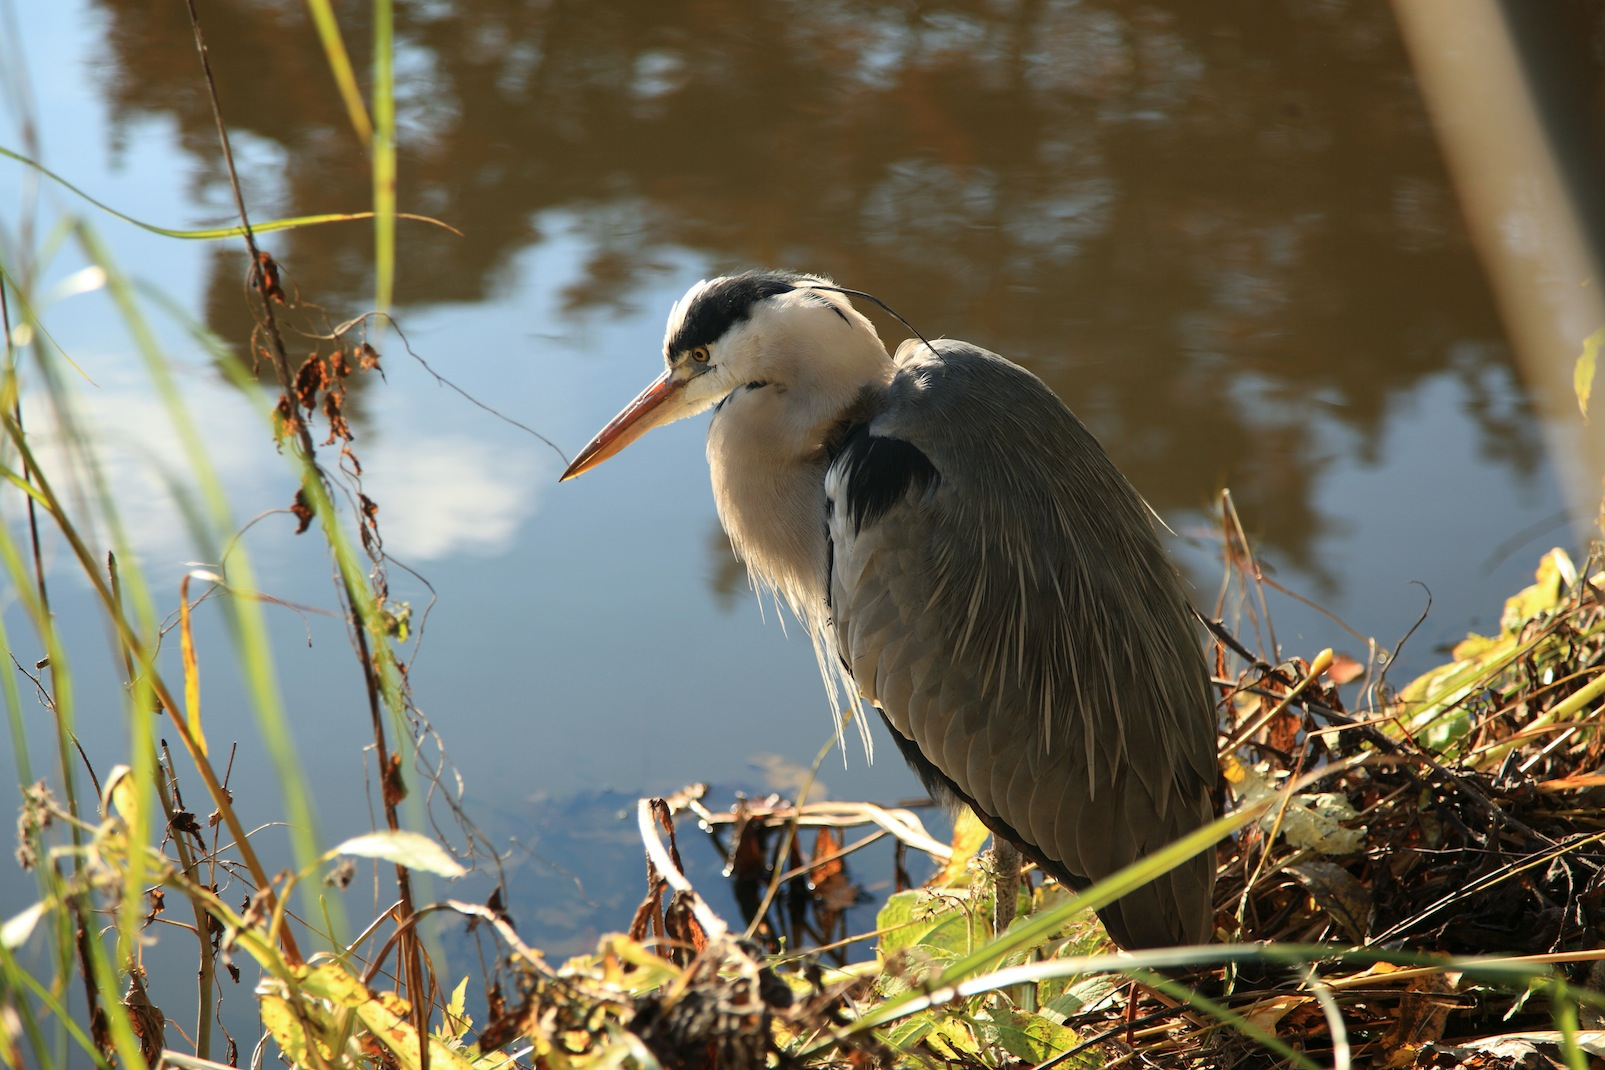 Heron in Vondels park amsterdam. An old heron i guess.Copyright Chris Bushe